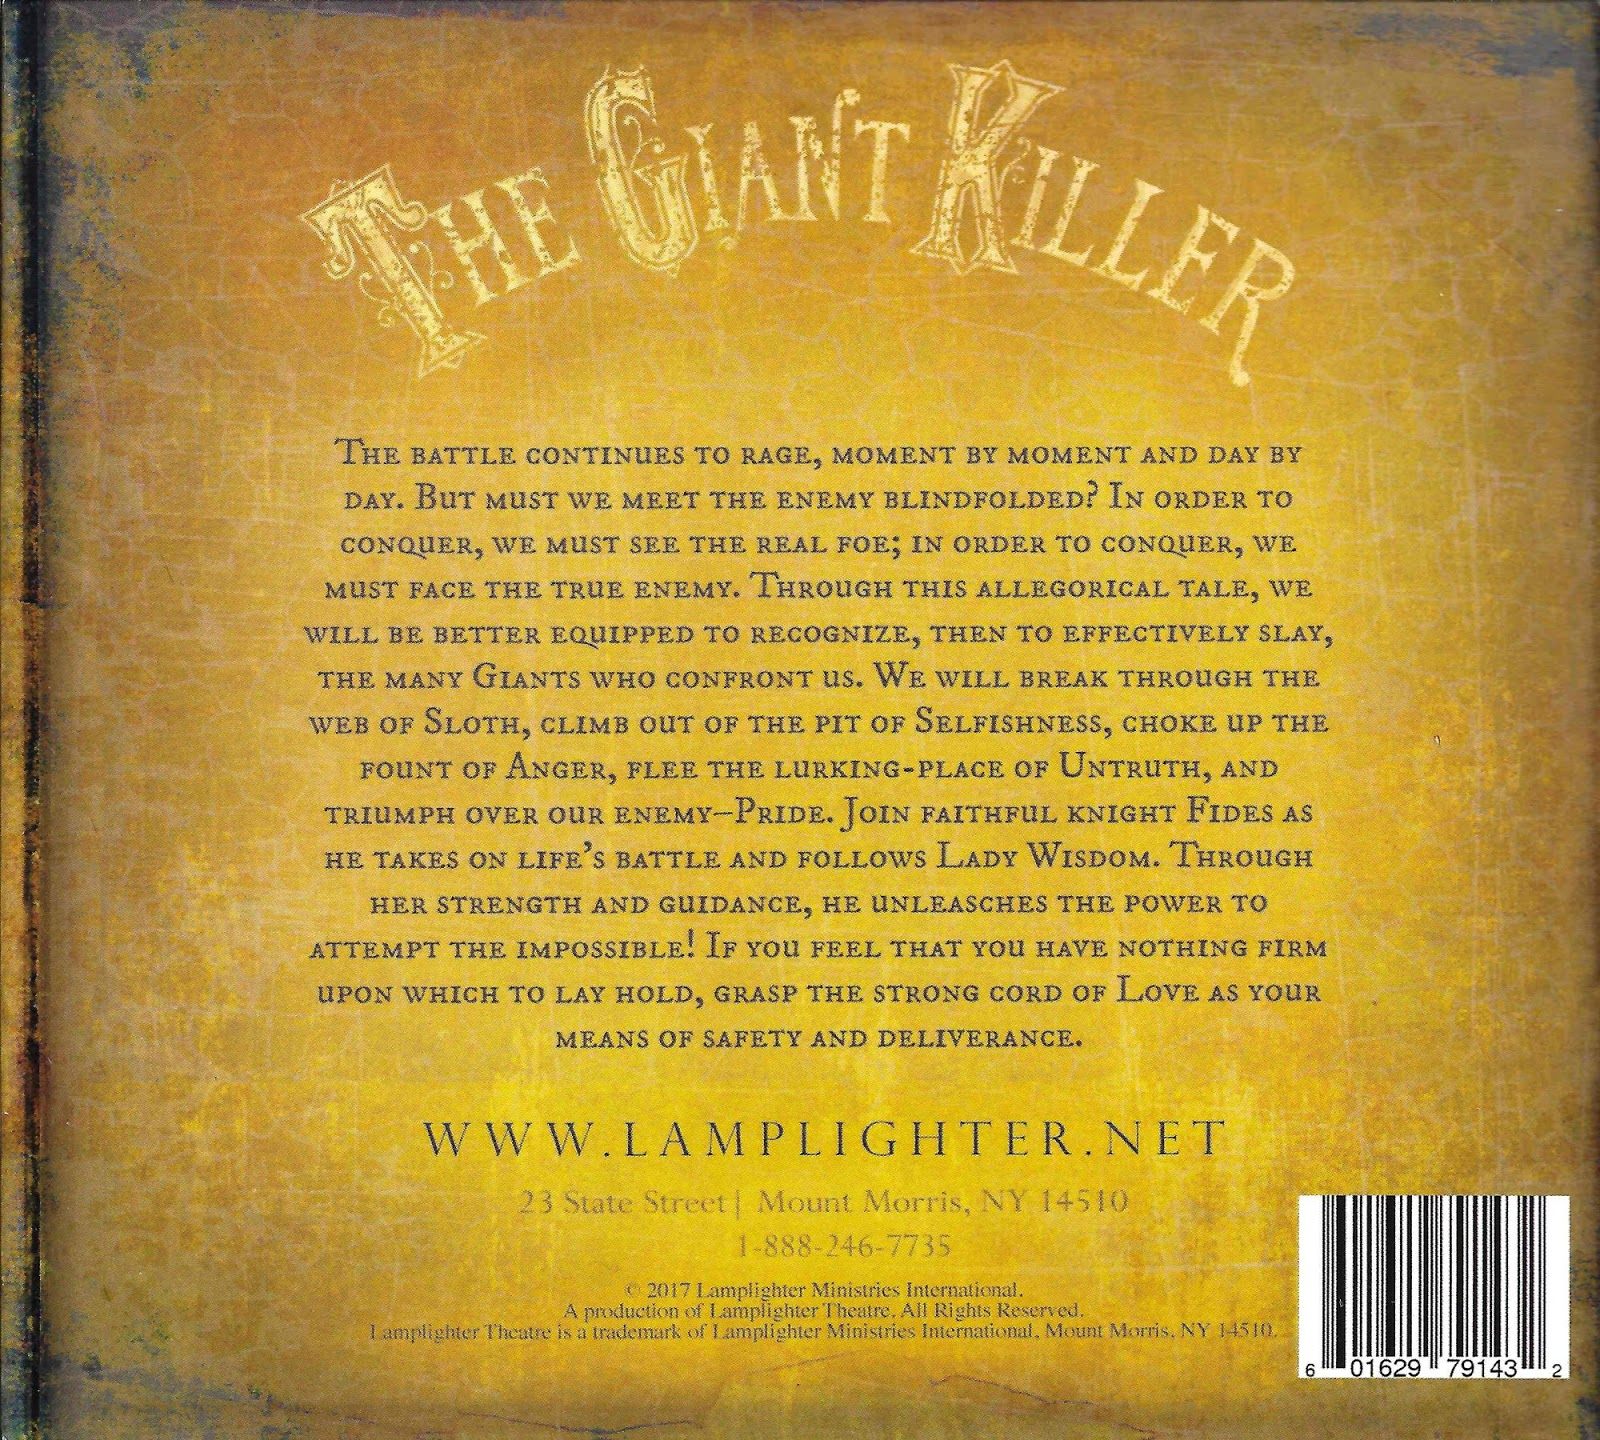 ATC104: Review Of The Giant Killer From Lamplighter